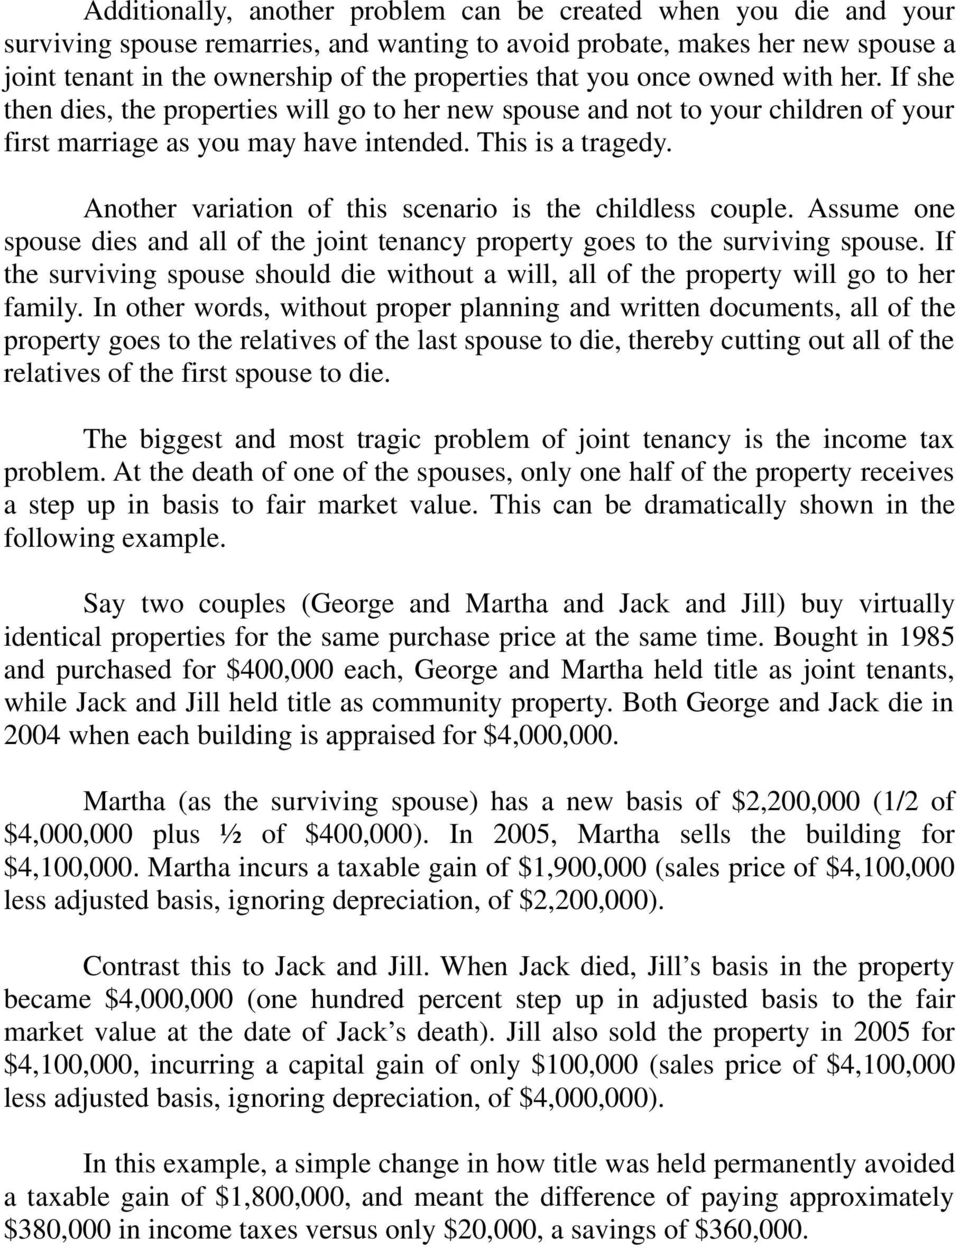 Another variation of this scenario is the childless couple. Assume one spouse dies and all of the joint tenancy property goes to the surviving spouse.